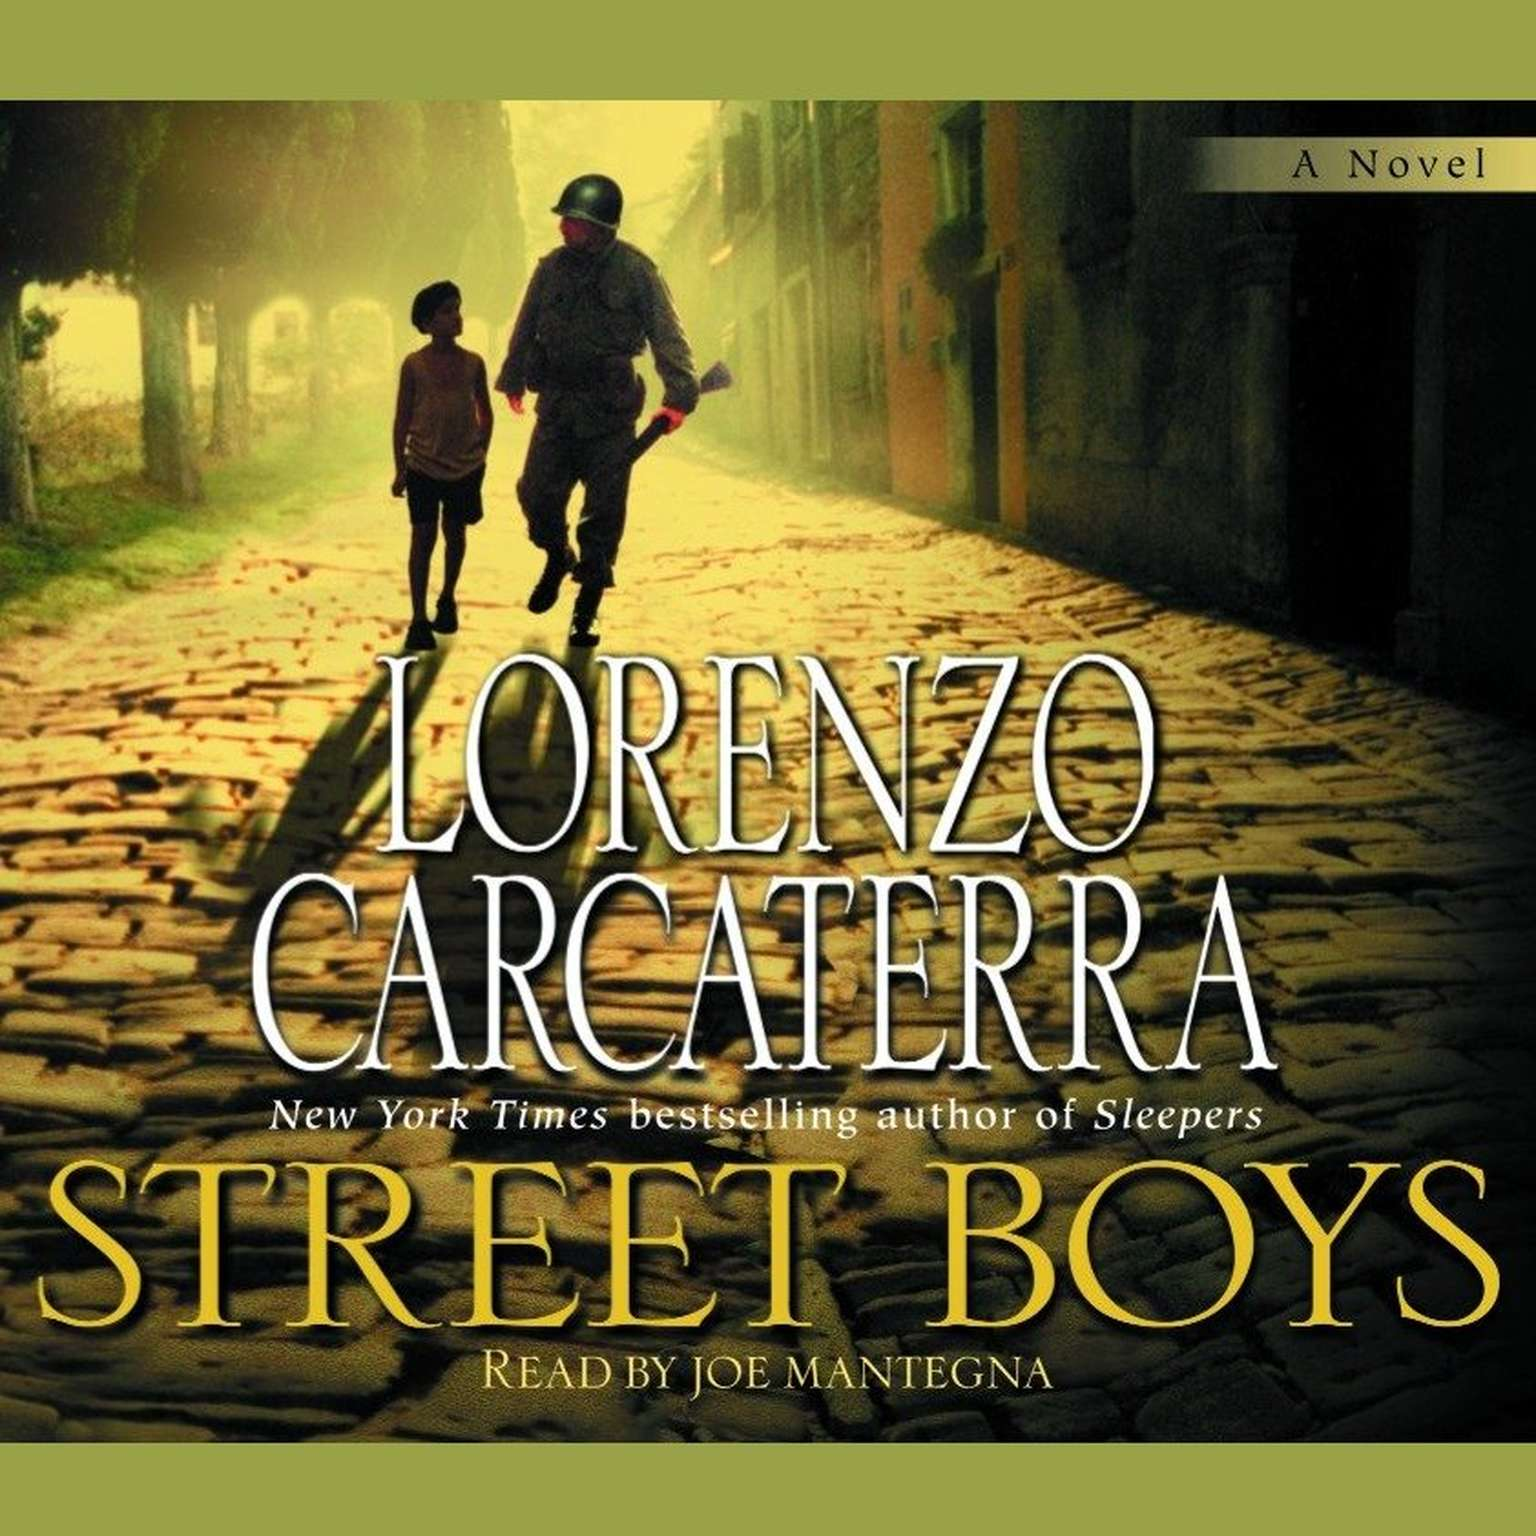 Printable Street Boys Audiobook Cover Art